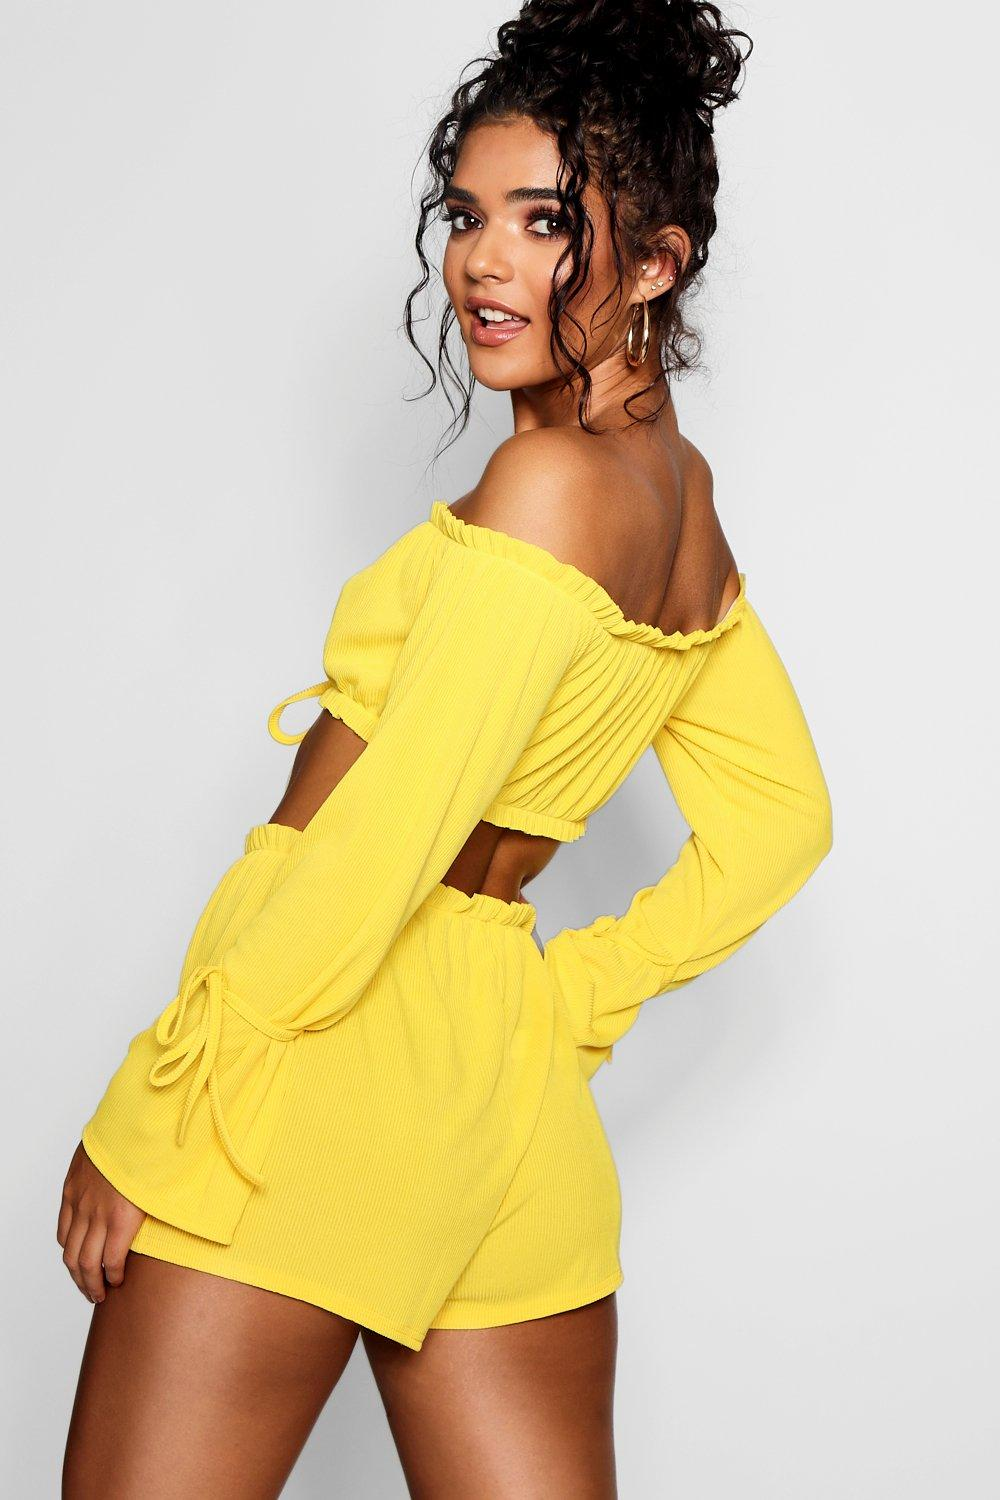 Bardot Detail ord Ribbed Crop yellow Co Tie Short AnZEdxqE